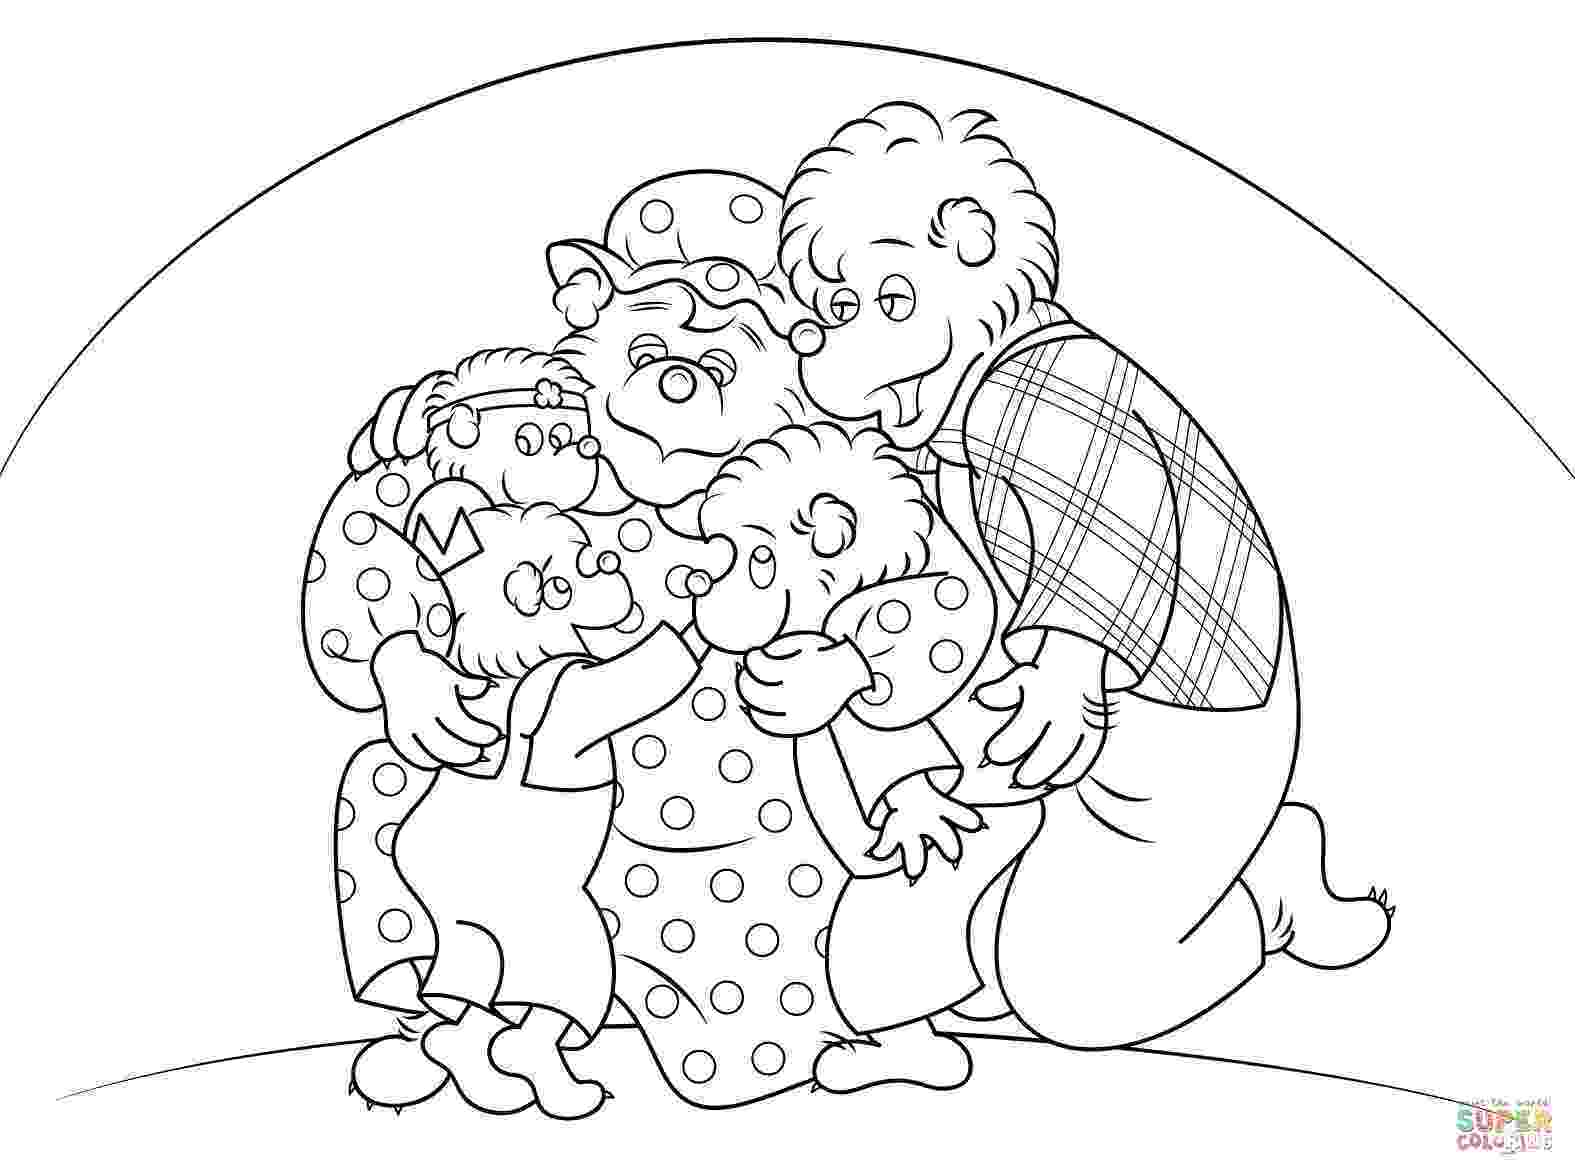 pinkalicious coloring pages free pinkalicious coloring pages kids fanart run for cupcake free pinkalicious coloring pages